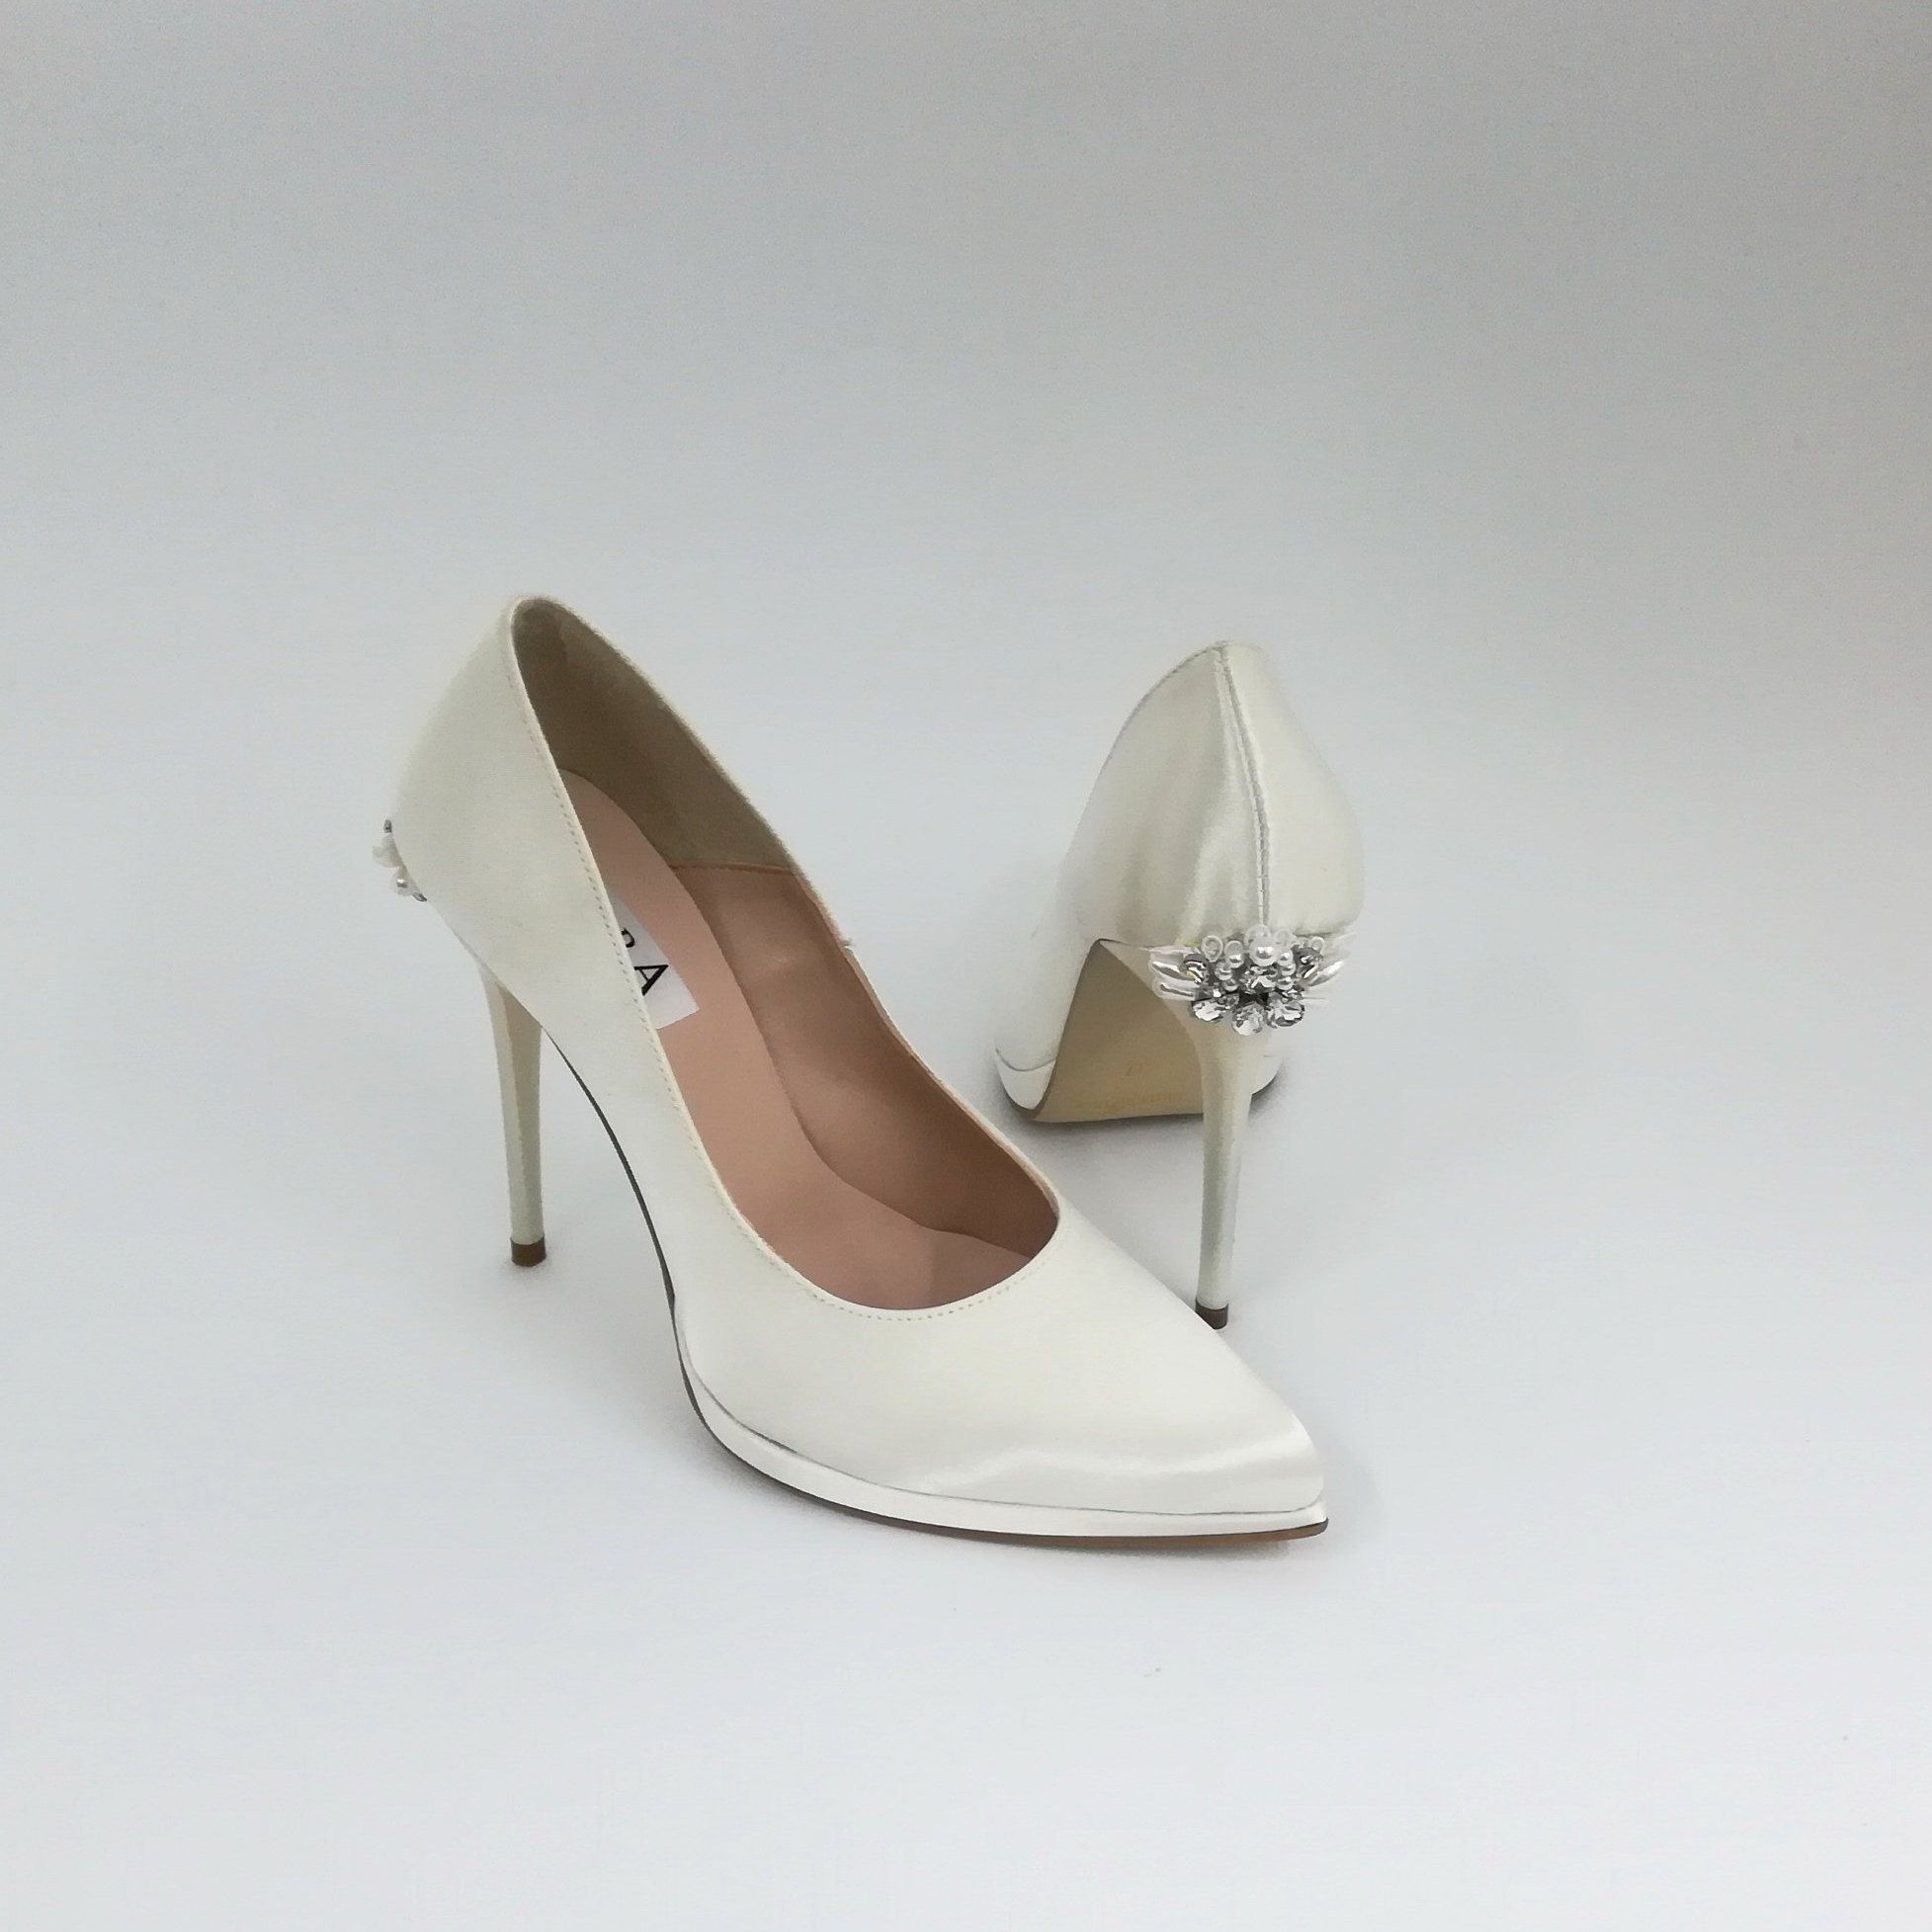 Scarpe Sposa Pelle.Custom Made In Italy Bridal Shoes Scarpe Da Sposa Scarpe E Sposa